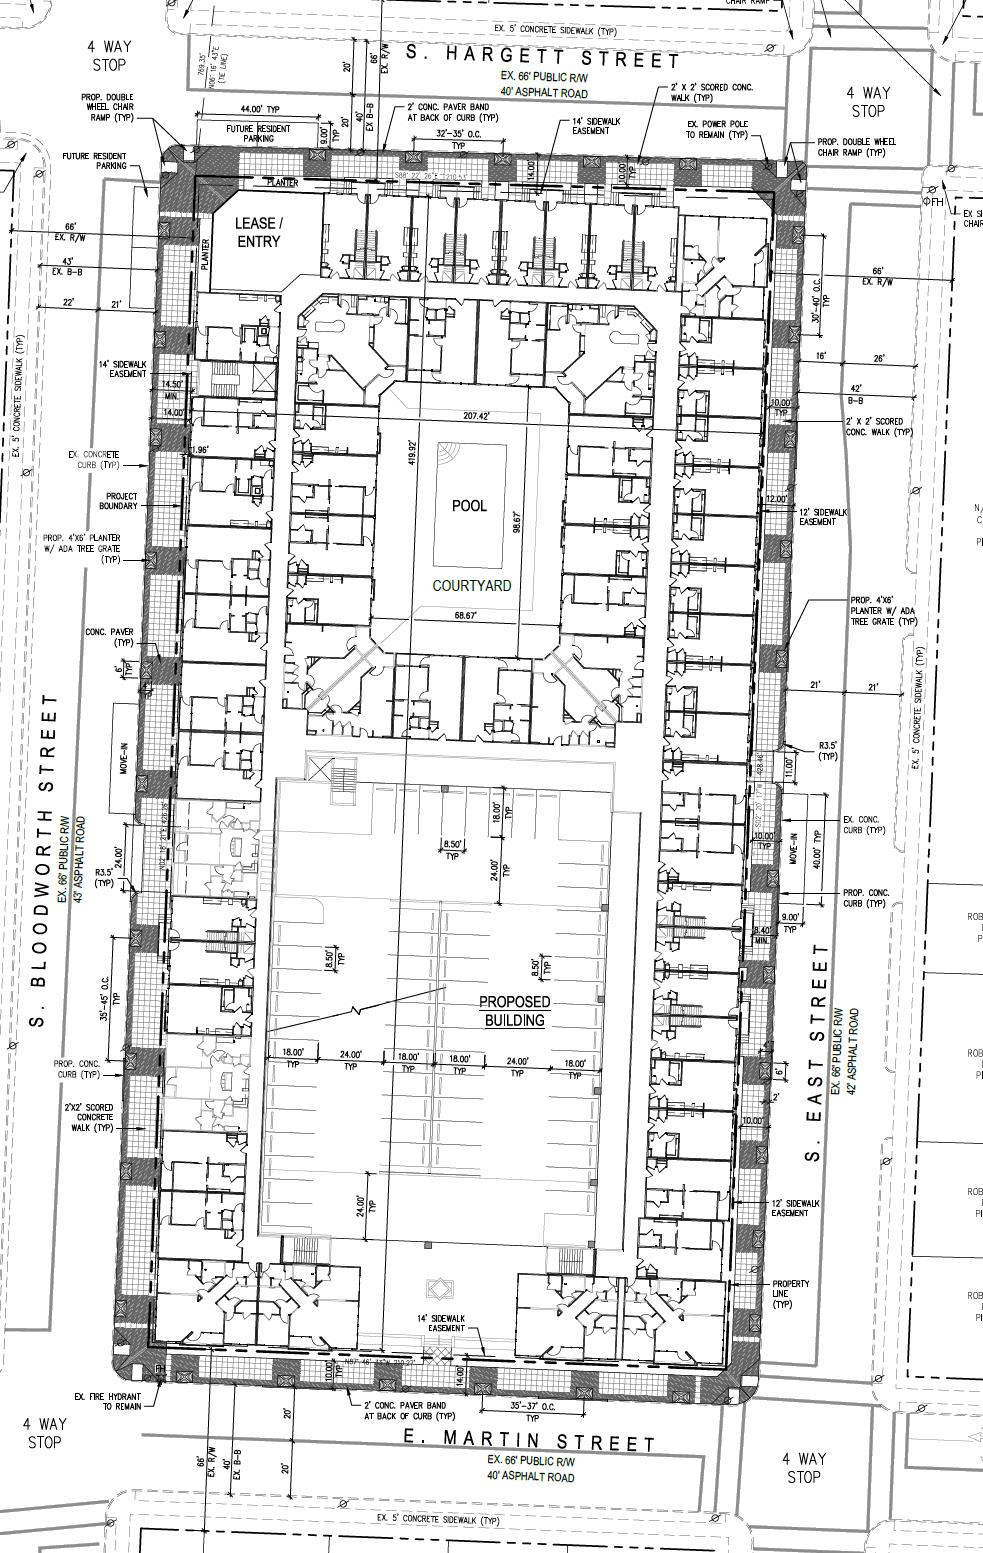 The Lincoln Preliminary Site Plan